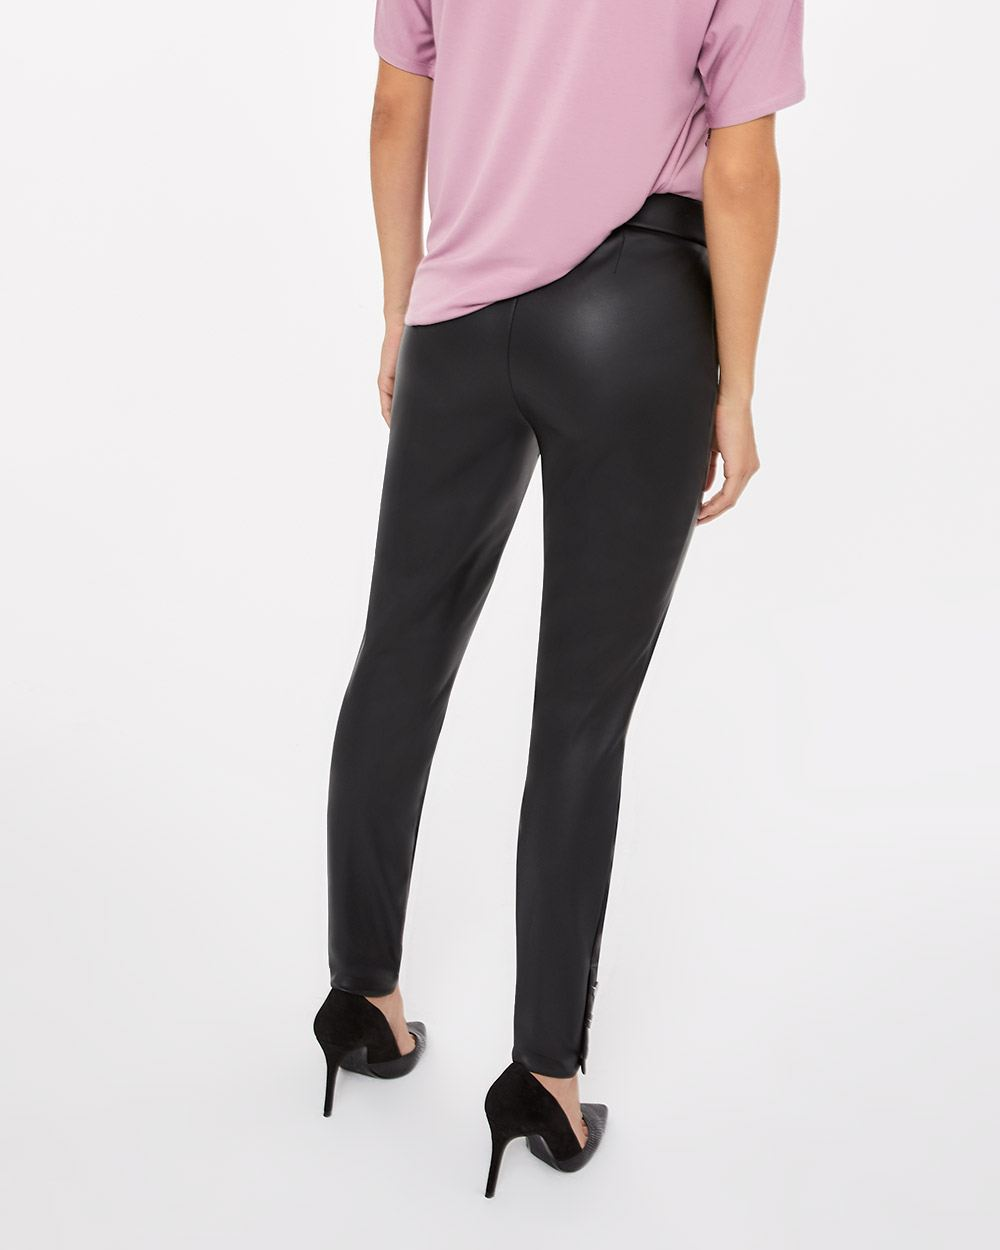 Faux Leather Novelty Leggings